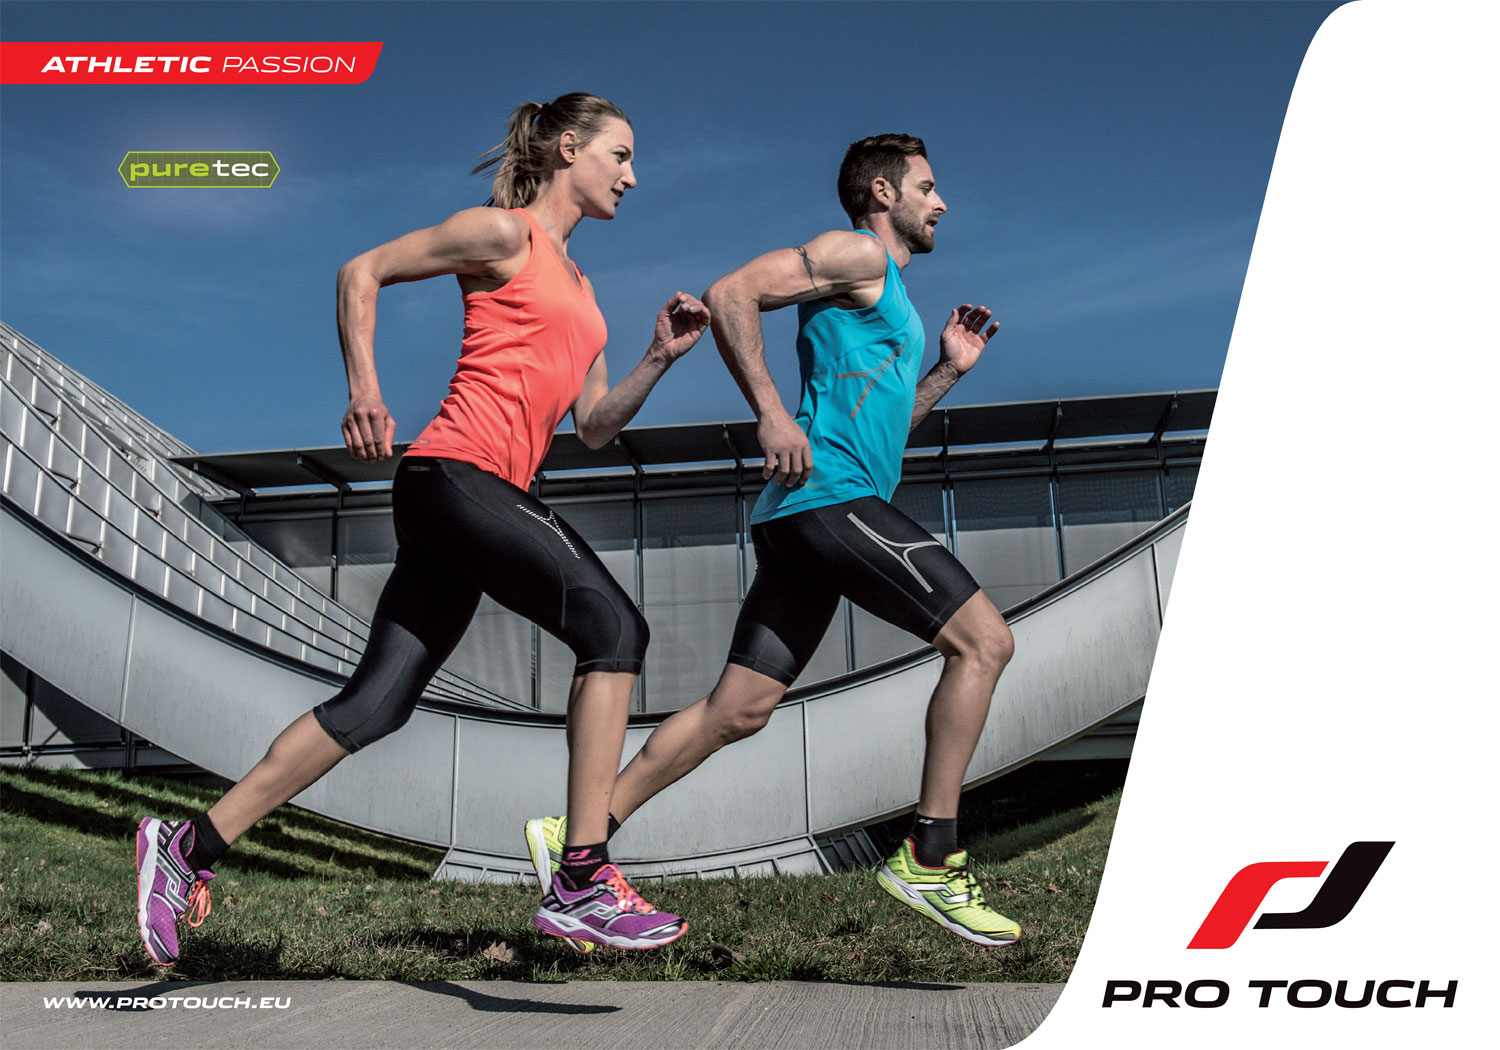 The New And Exclusive Intersport Pro Touch Puretec Range Industry Partners Sports Insight